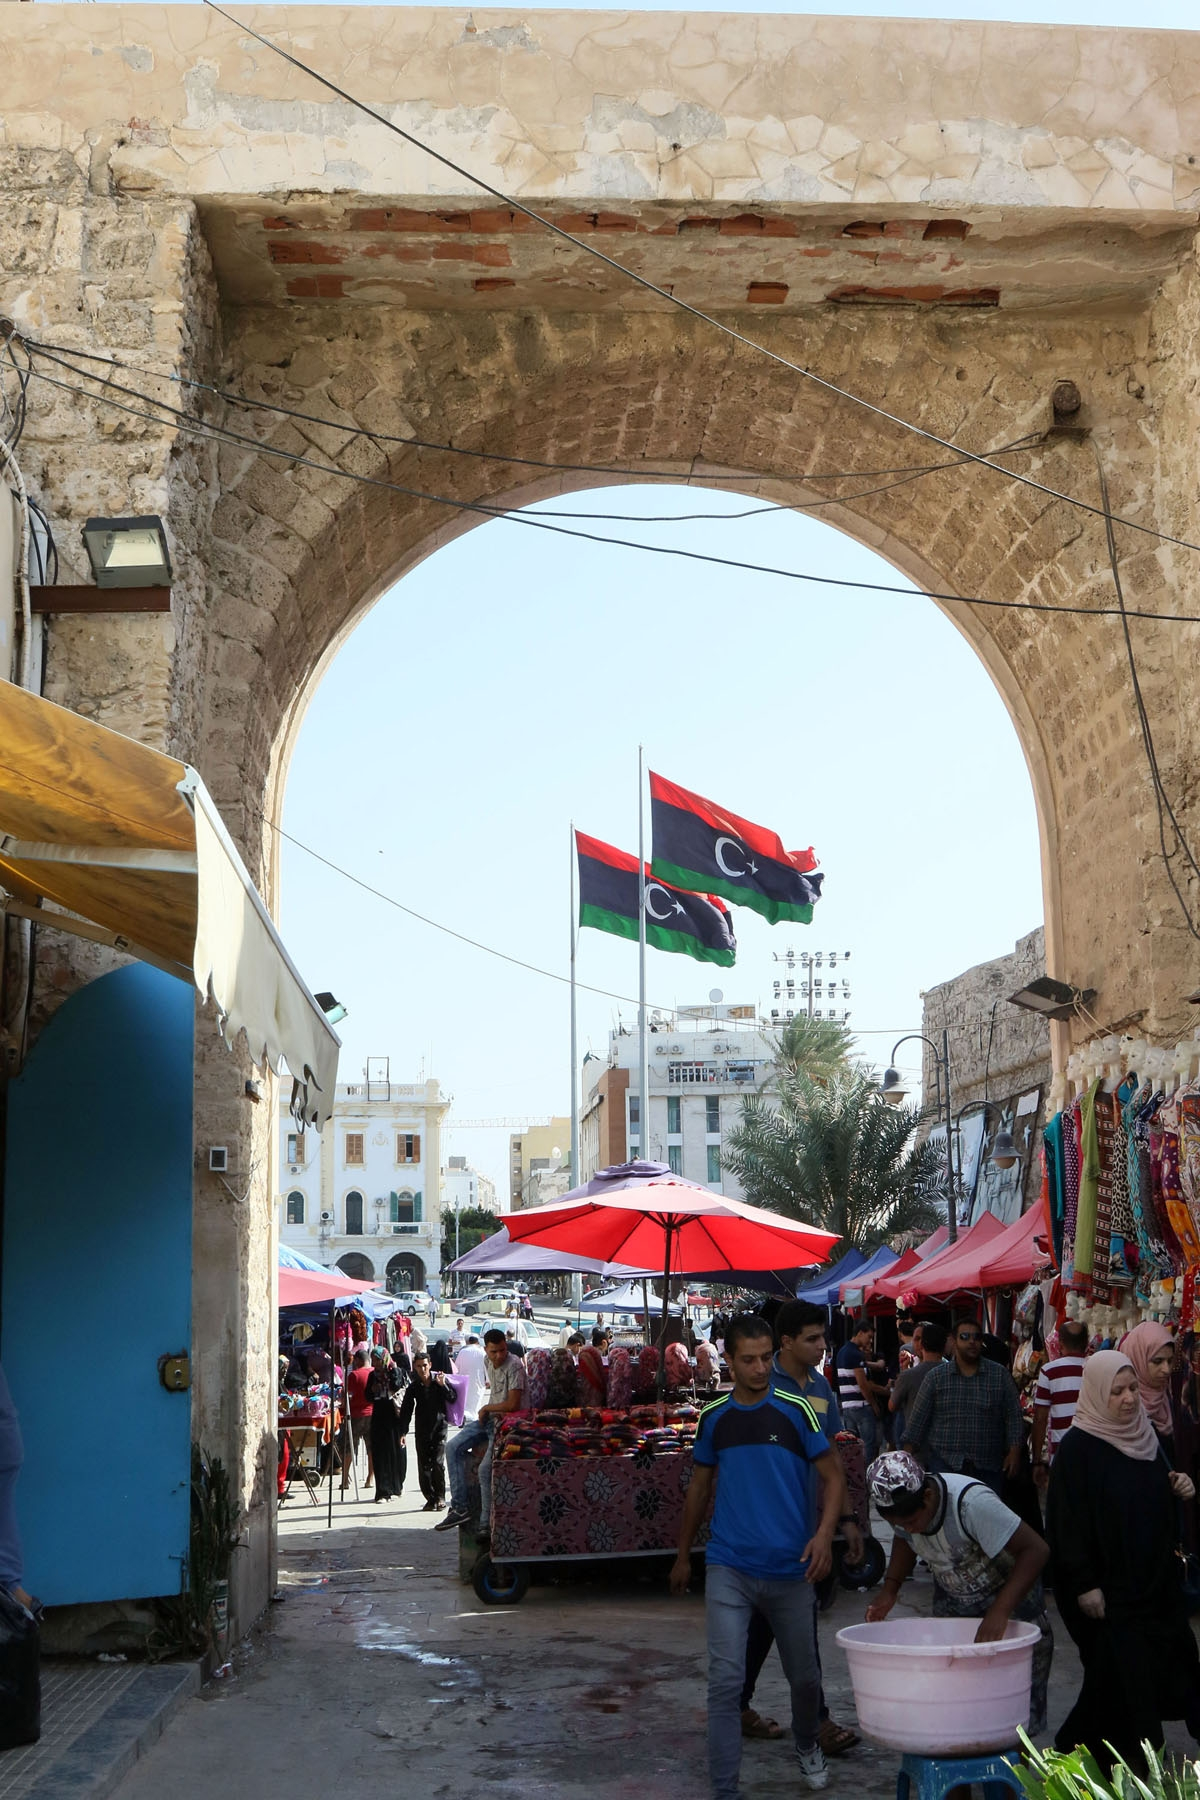 Libyans shop at a market on Martyrs' square in the Libyan capital Tripoli on October 18, 2016.